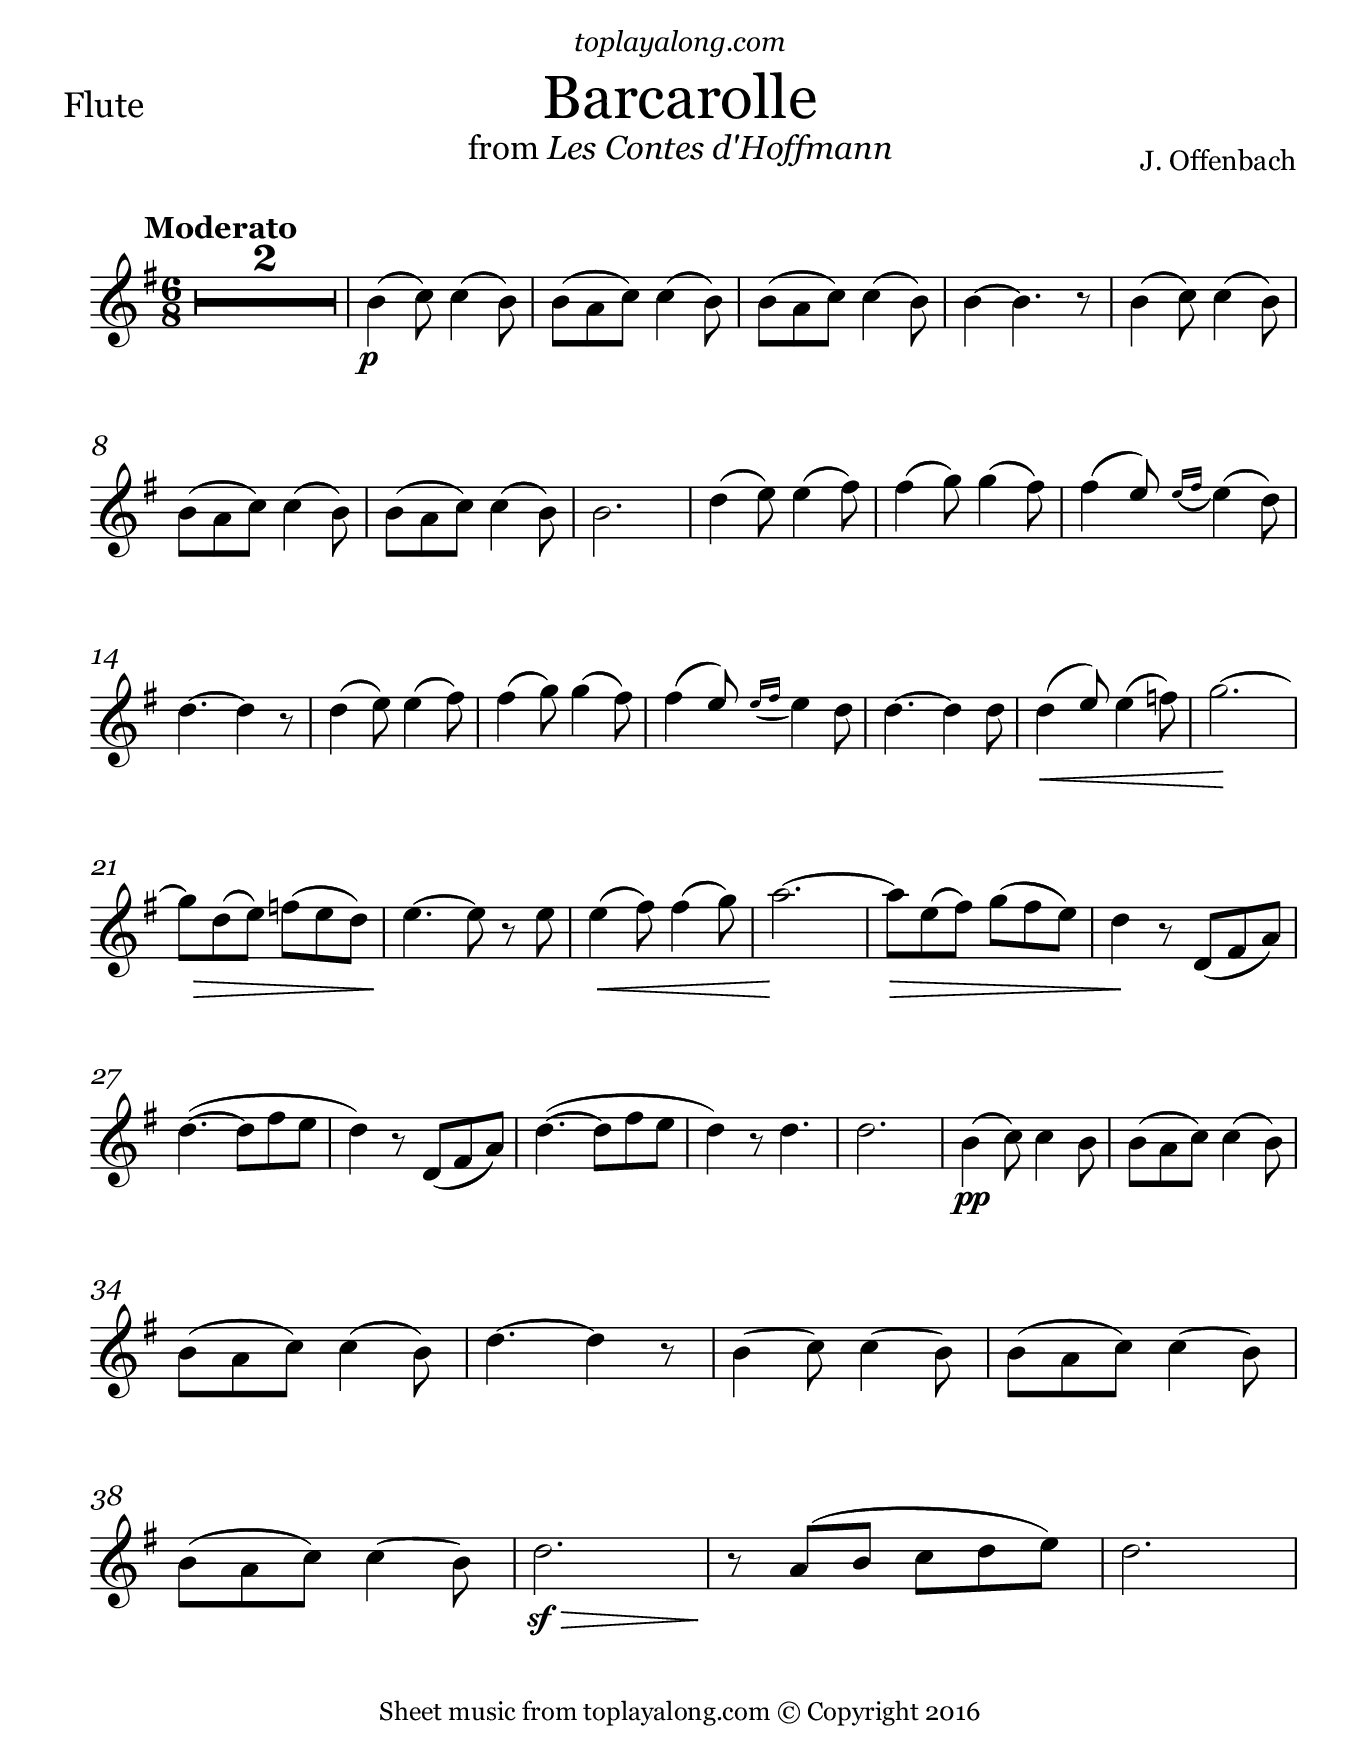 Barcarolle from The Tales of Hoffmann by Offenbach. Sheet music for Flute, page 1.